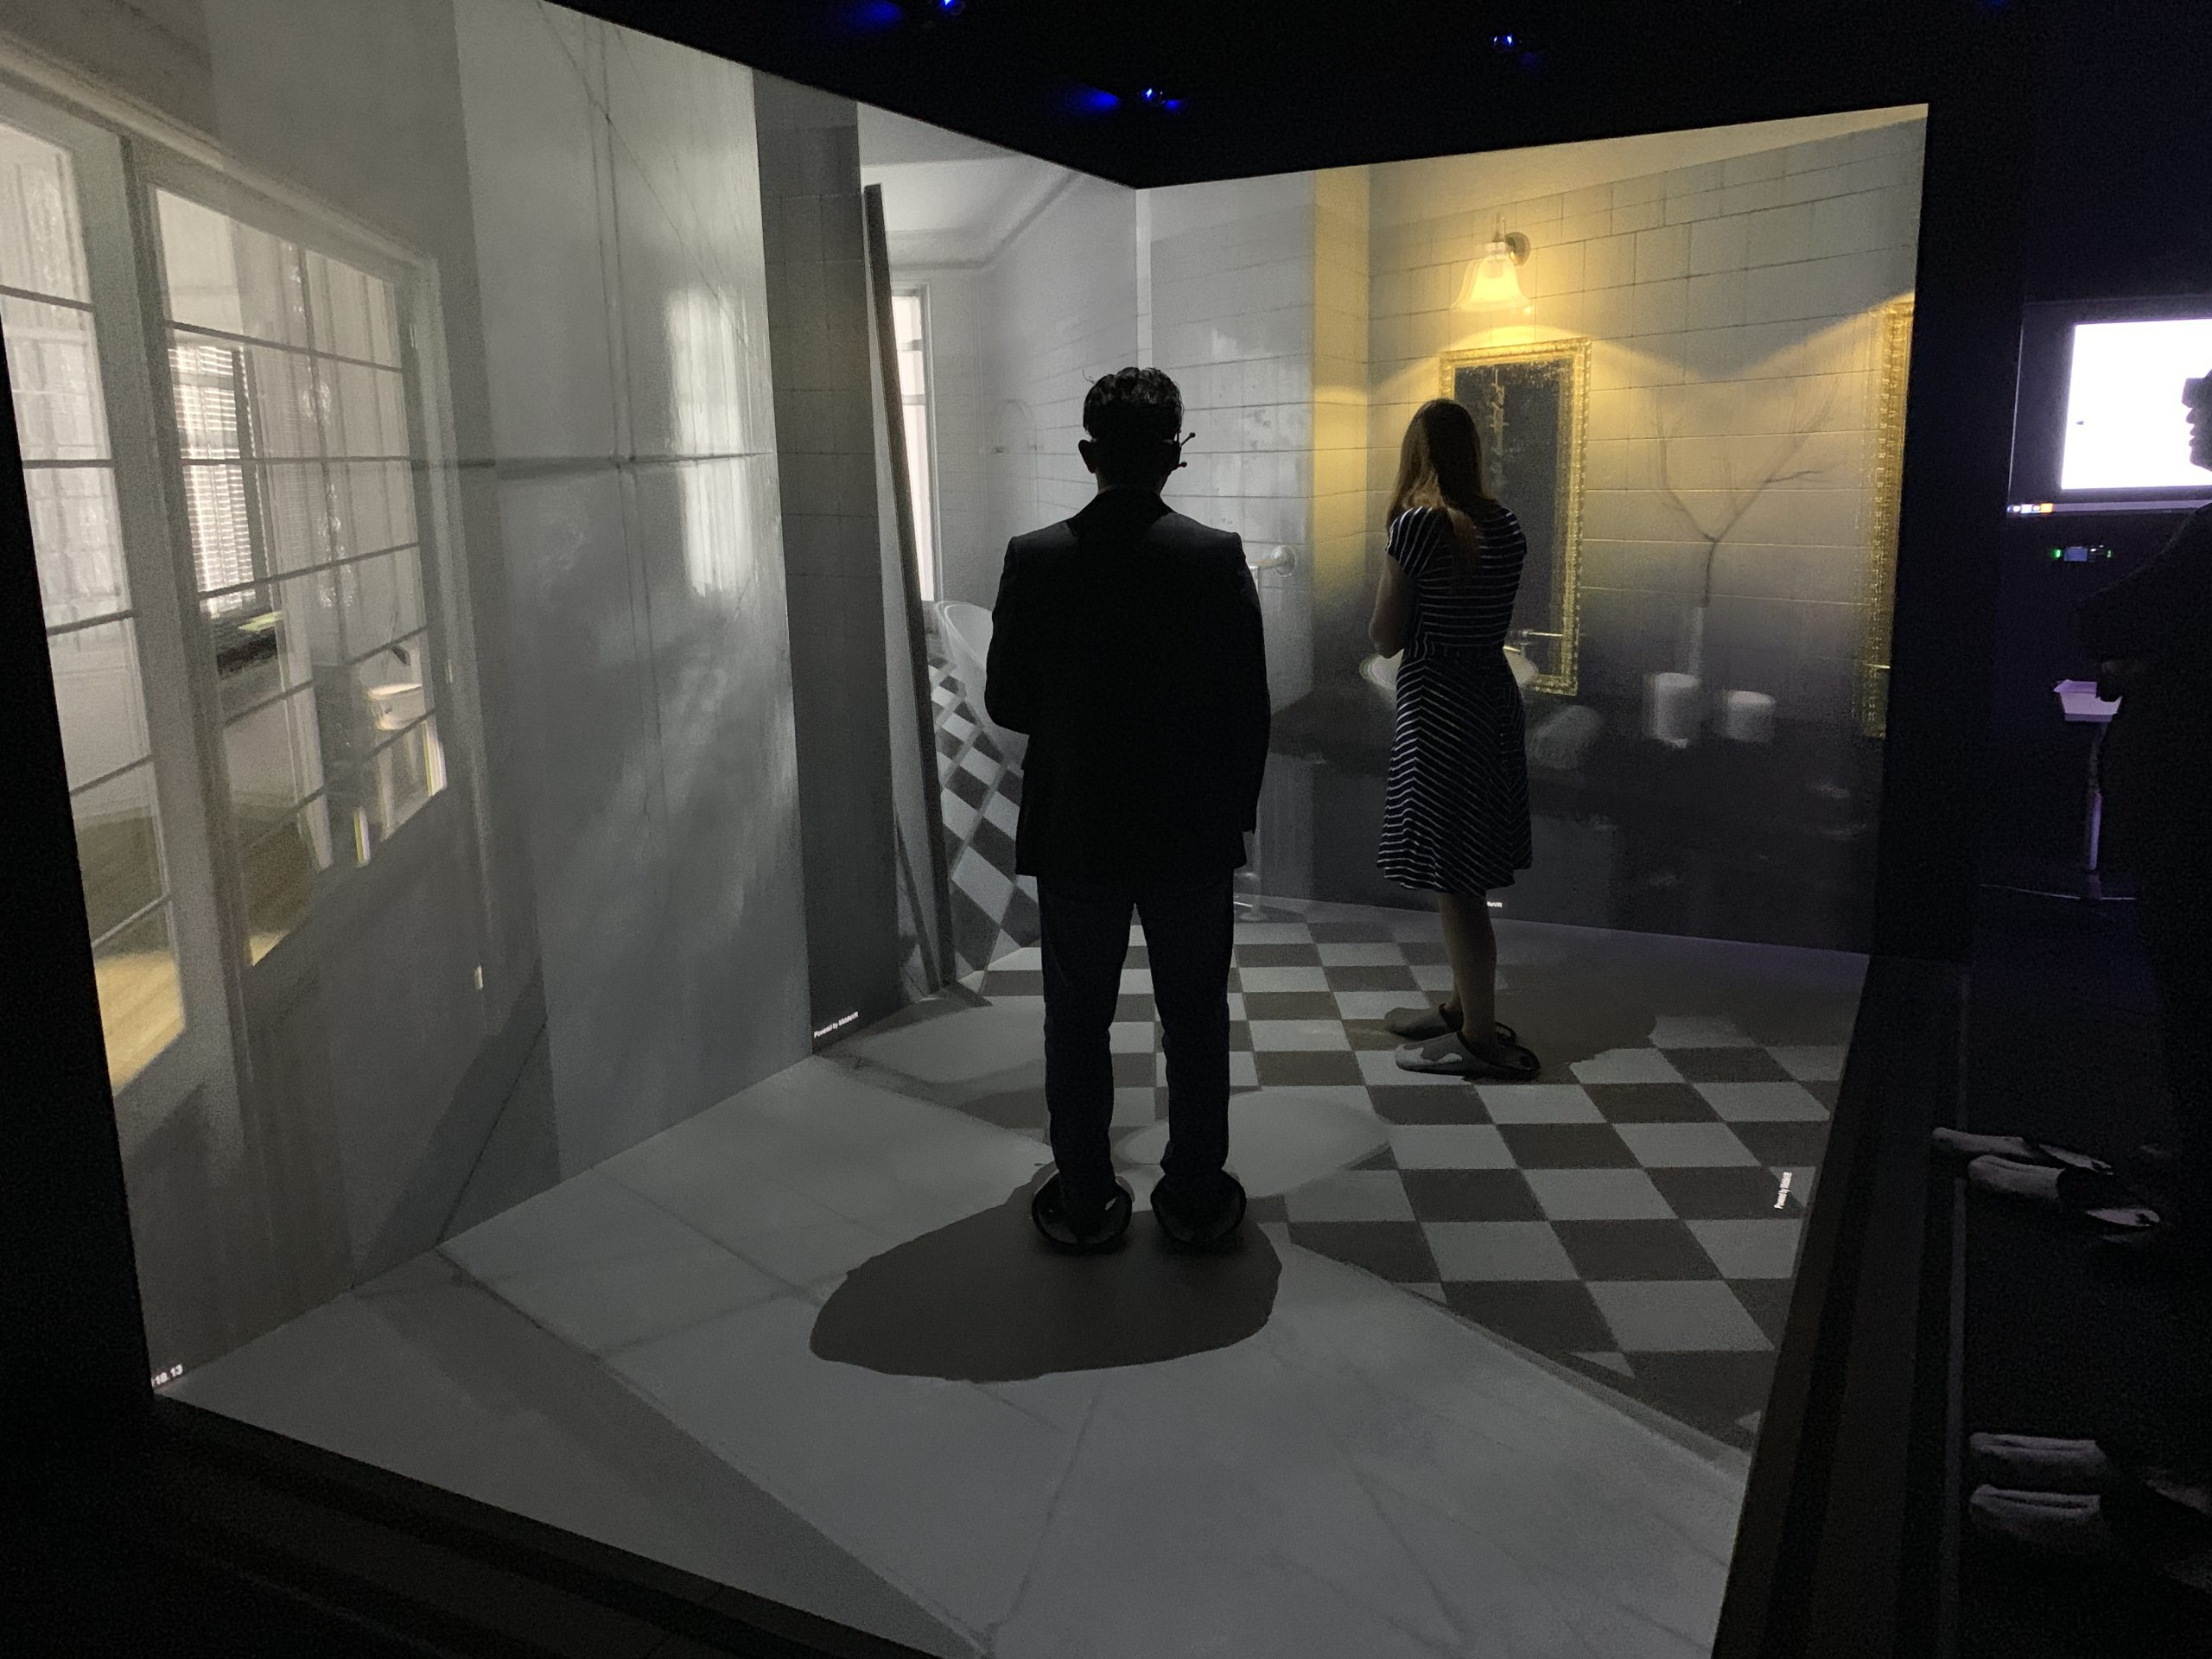 VR CAVE Brings State-of-the-Art Immersive Technology to Phidias Lab